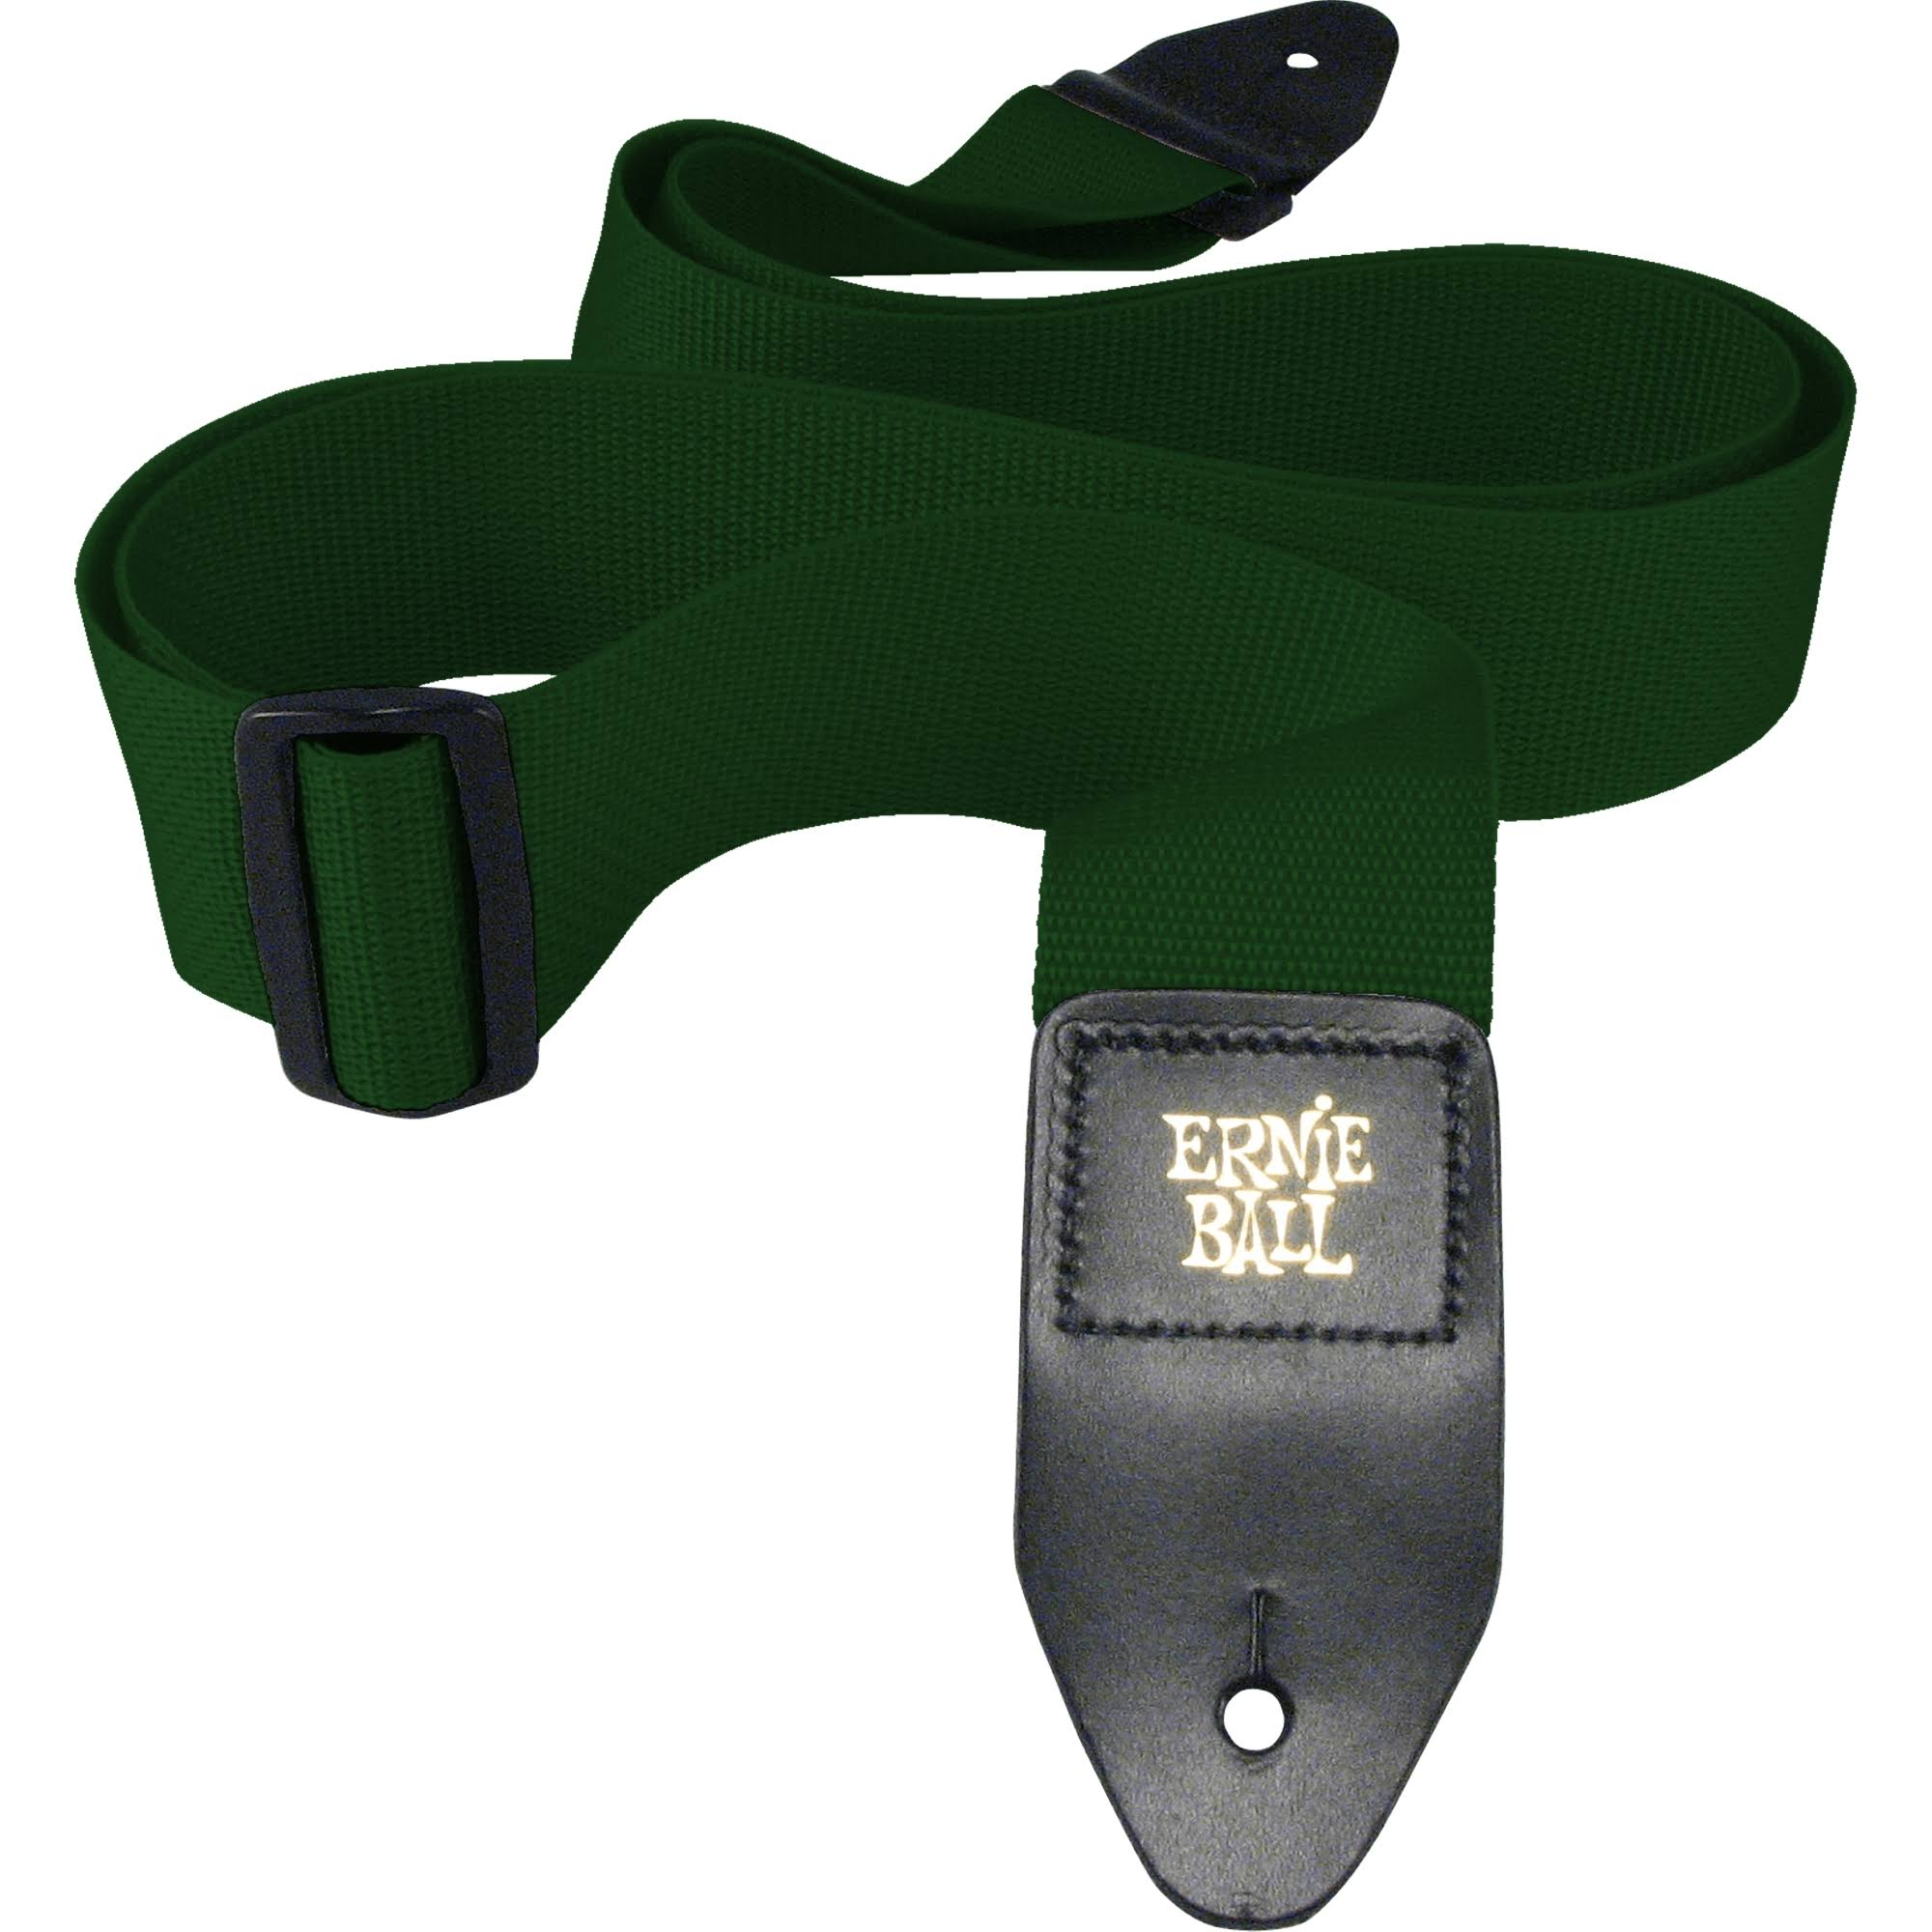 Ernie Ball Polypro Guitar Strap - Forest Green